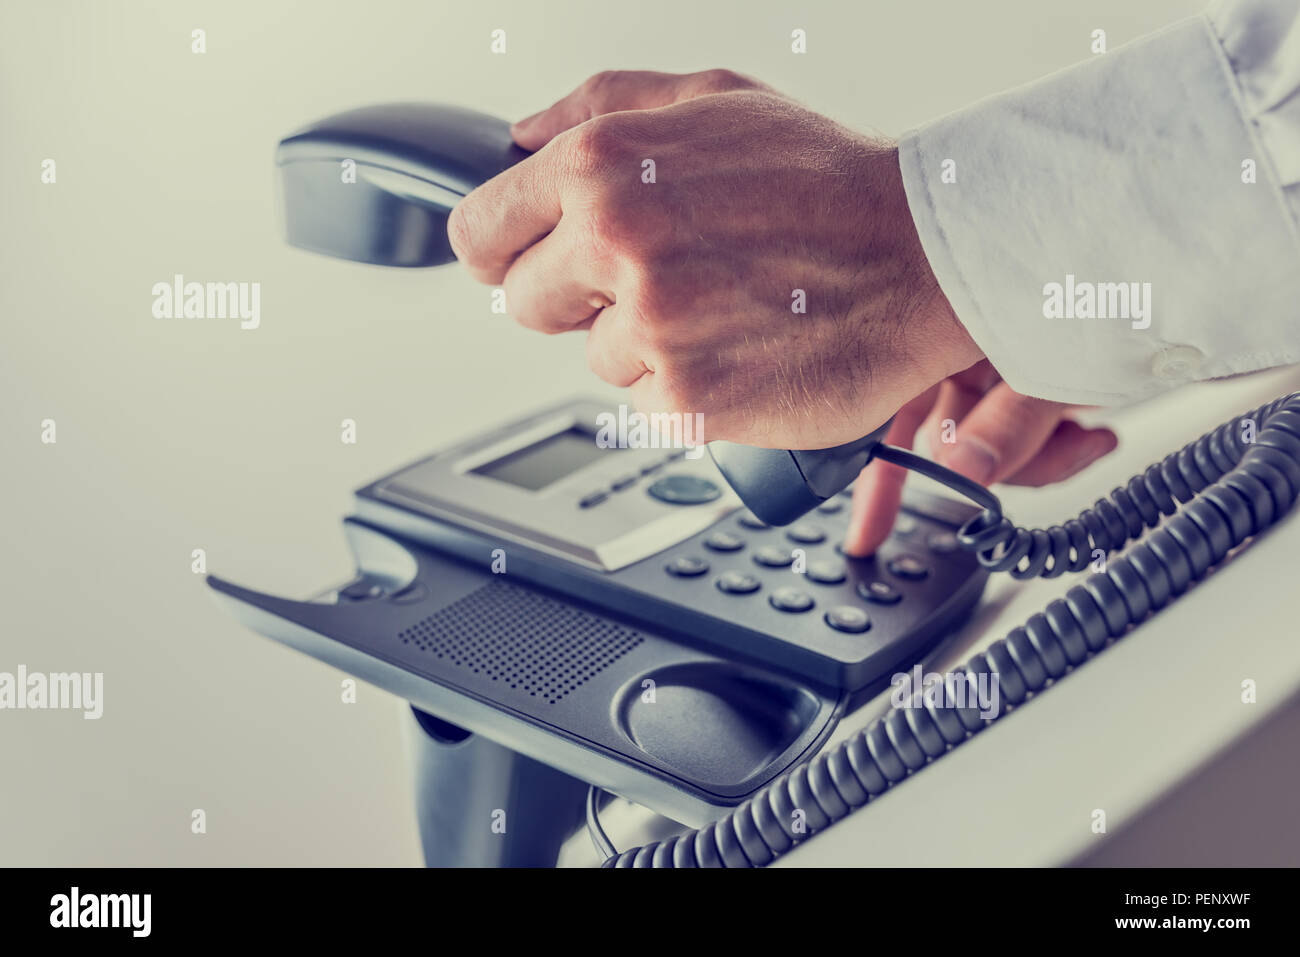 Retro effect faded and toned image of a business man dialing a phone number and picking up handset. - Stock Image